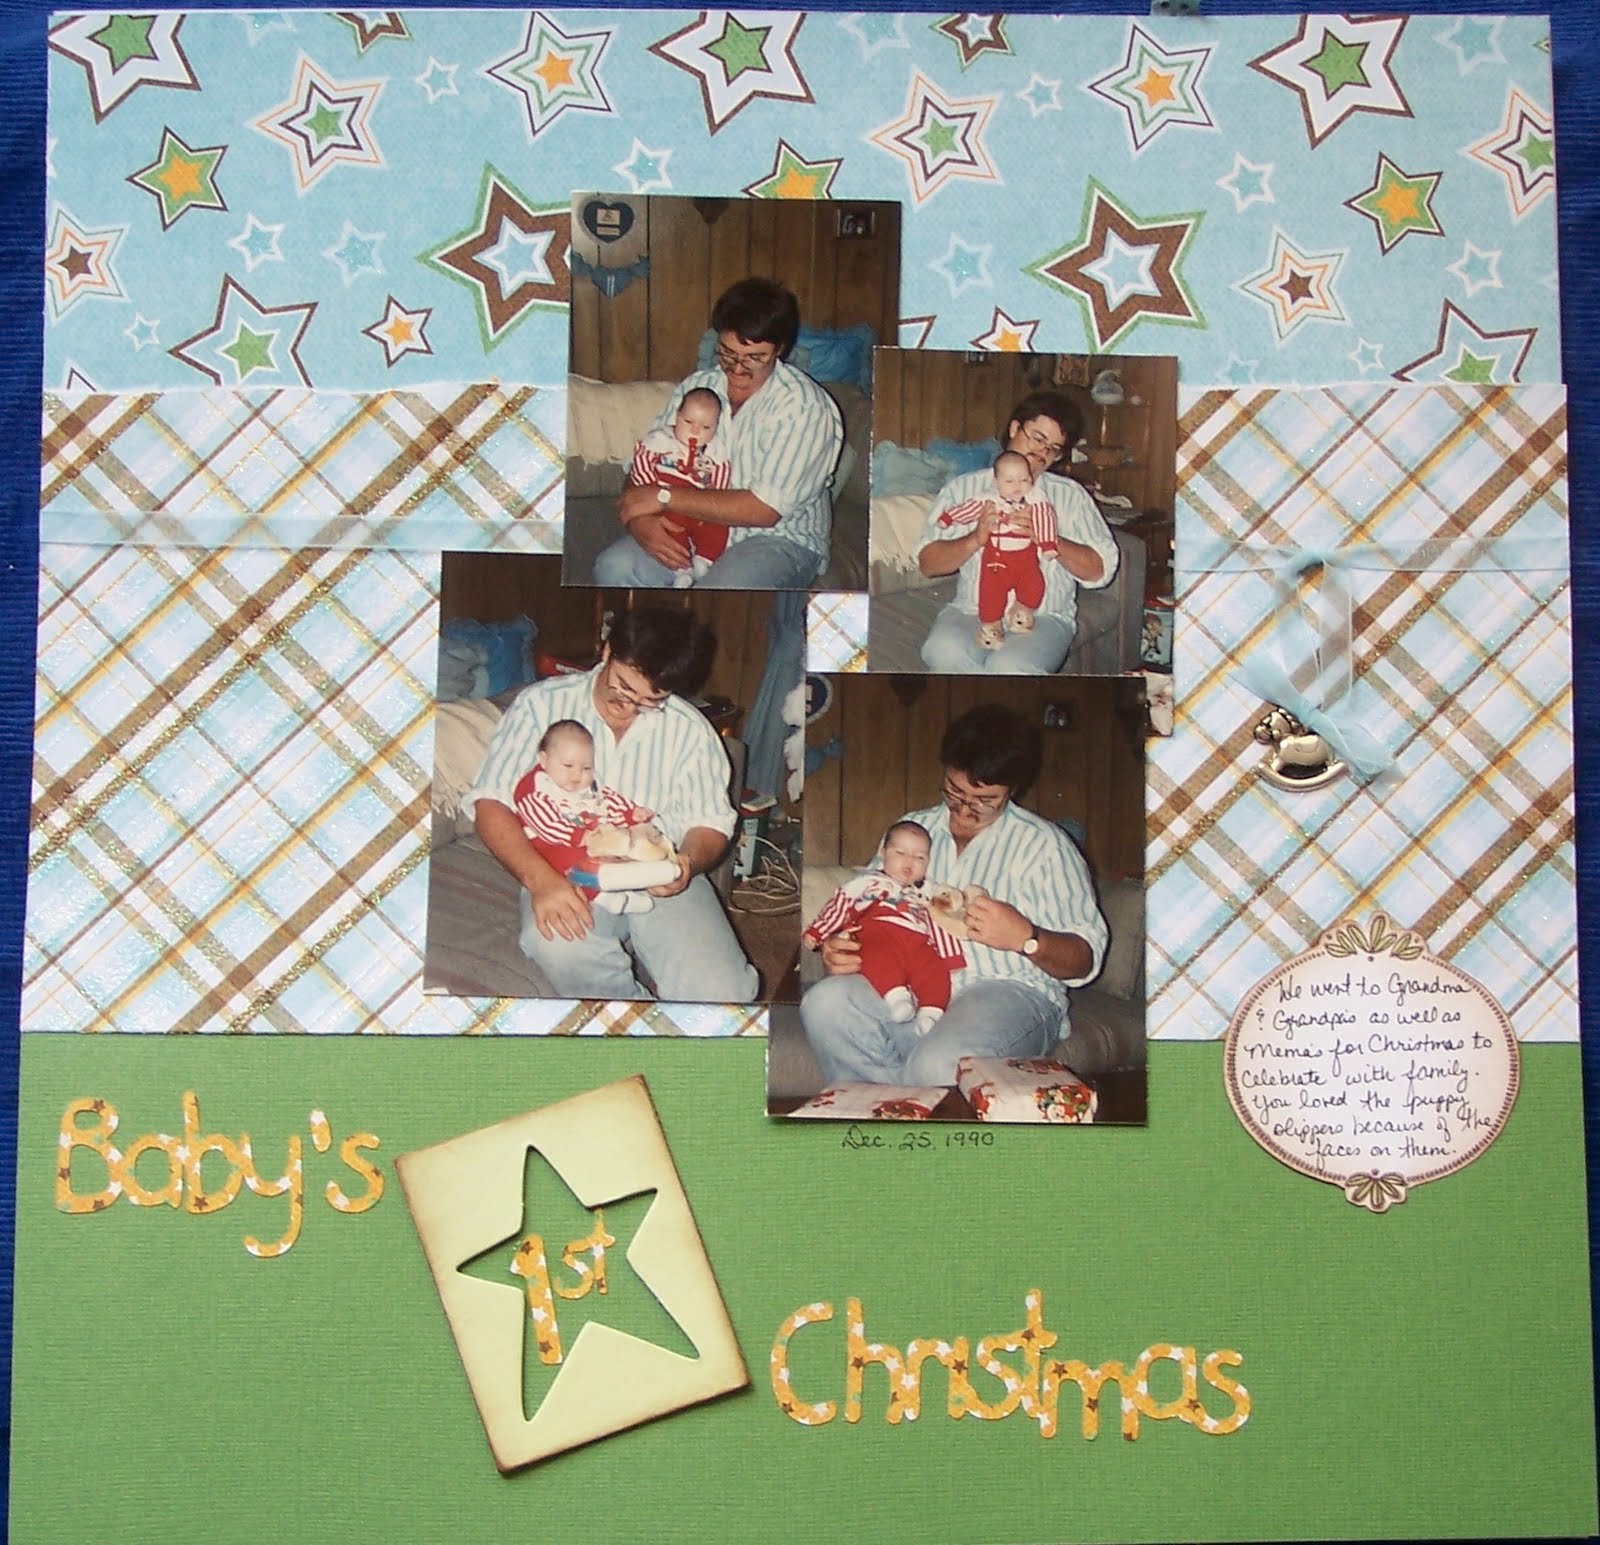 Scrapbook ideas abc album - It Has Made This Album Such A Cinch To Pull Together And Such Fun I Added A Lil Metal Rocking Horse Charm And Some Abc Block Buttons To The Layouts Along